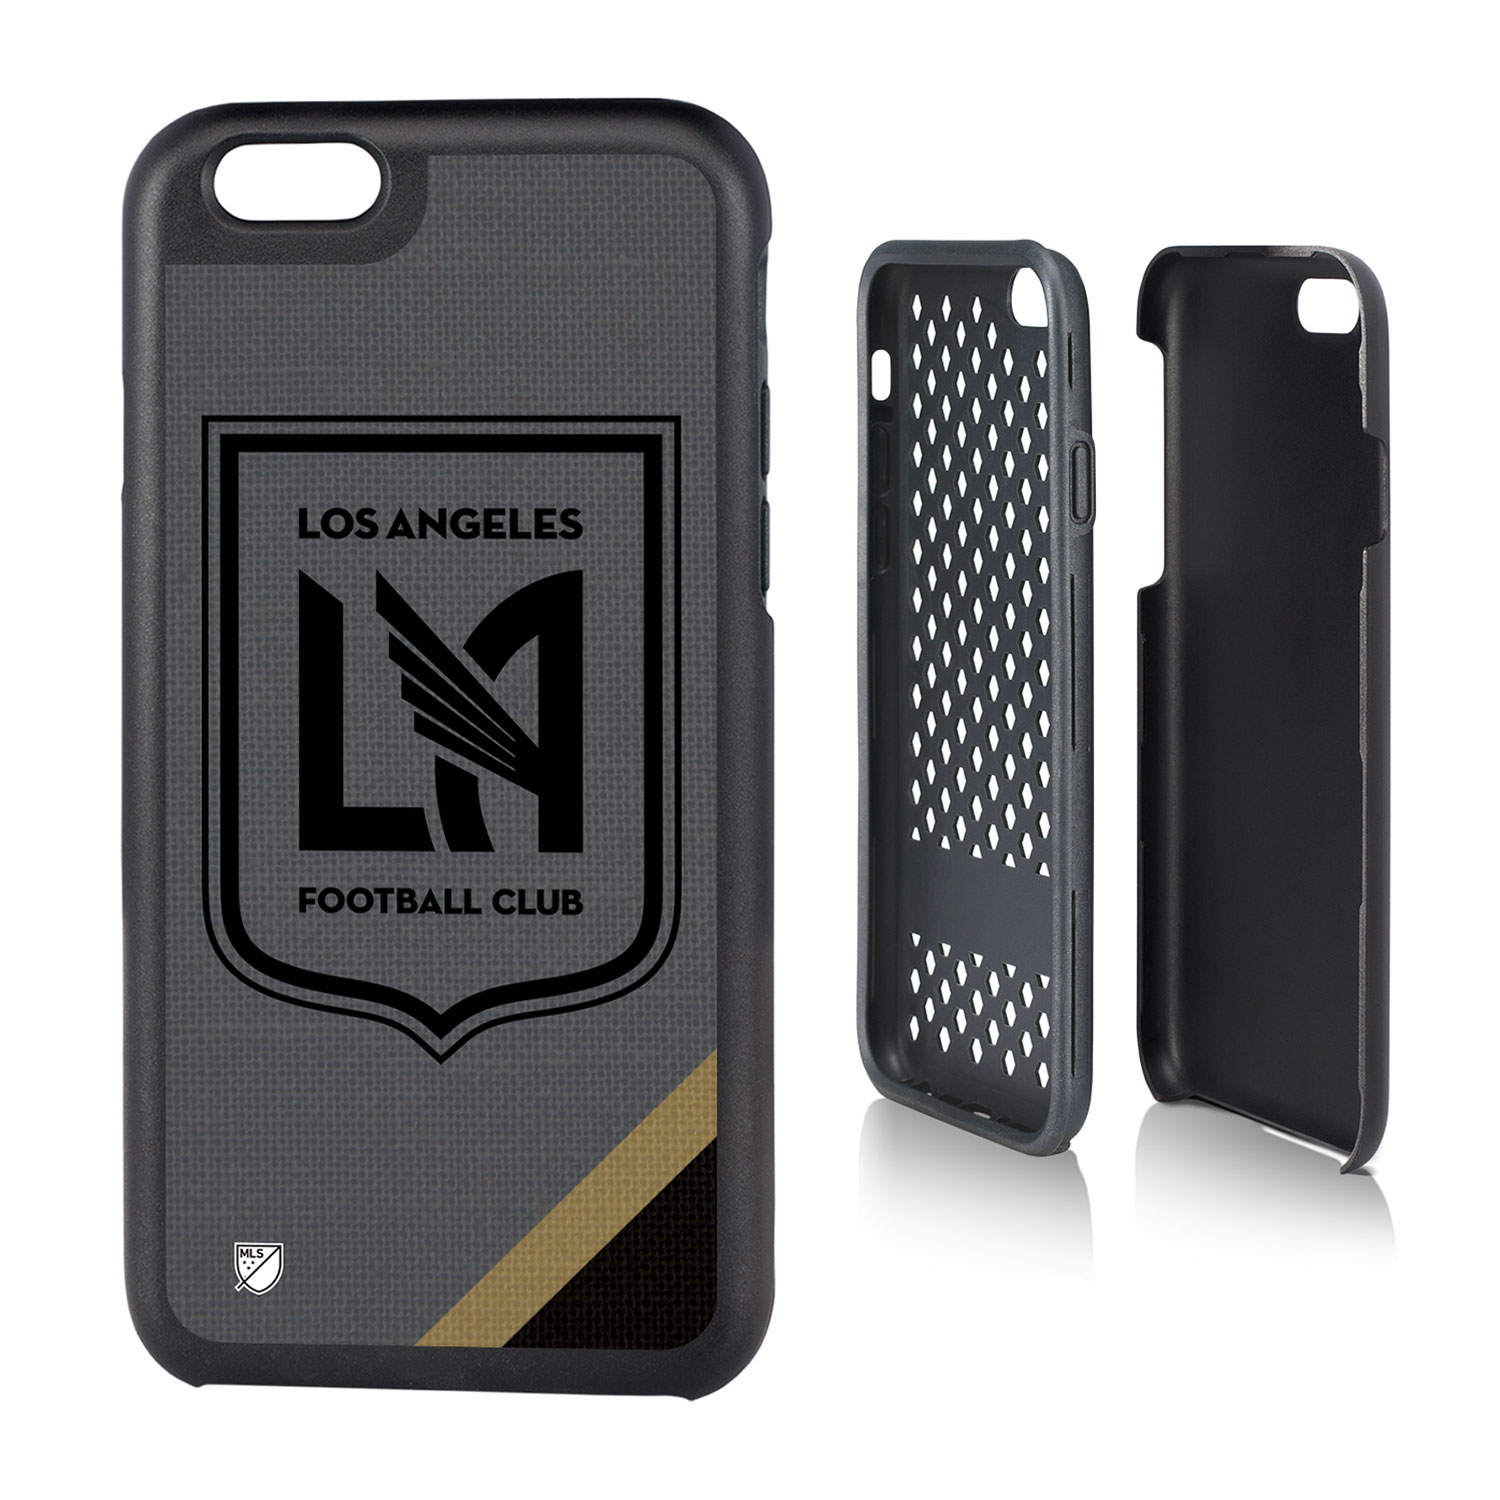 Los Angeles Footbal Club LAFC Solid Rugged Case for iPhone 6 / 6S